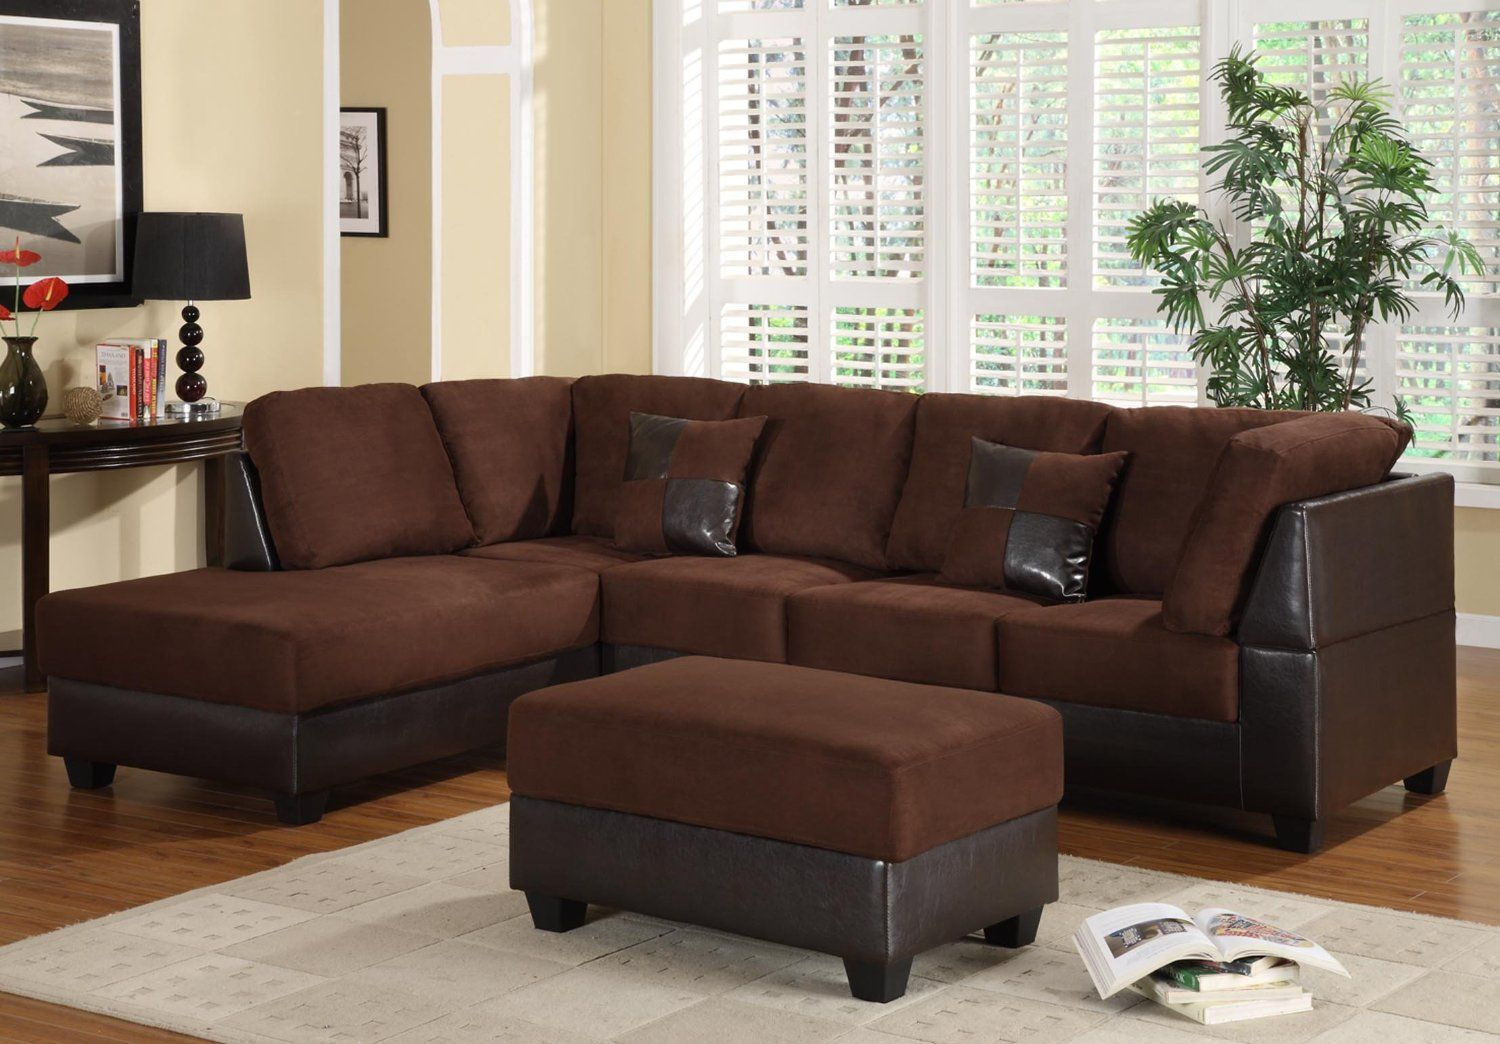 13 Cheap Sectional Sofas Under 500 Living Room Sets 3 Piece Living Room Set Sectional Sofa